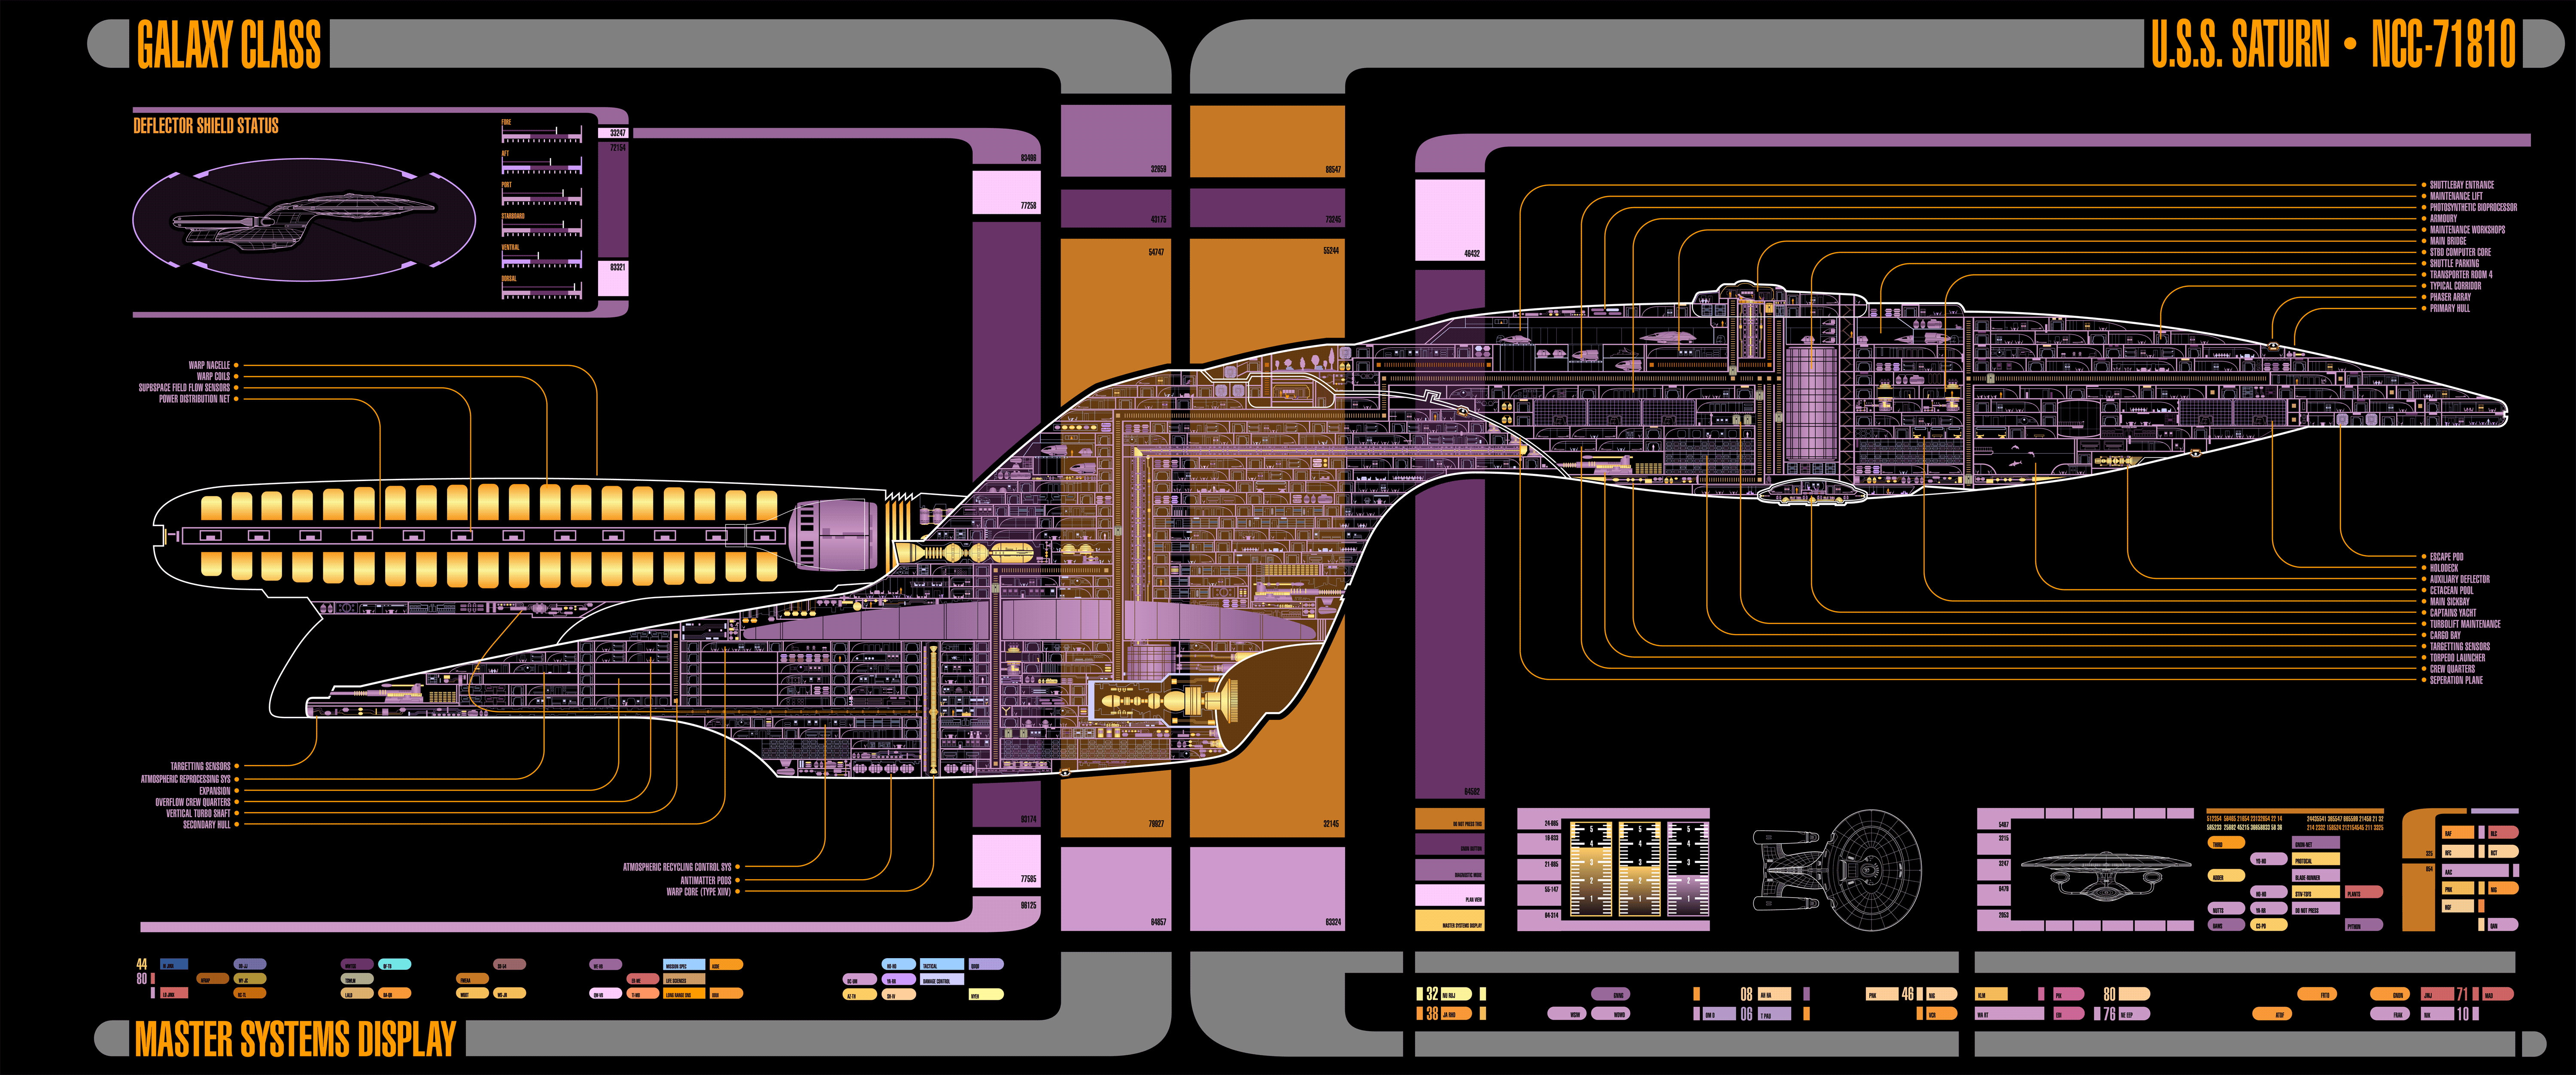 hight resolution of enterprise d with additional detail by padsbrat star trek iii star wars alien ship